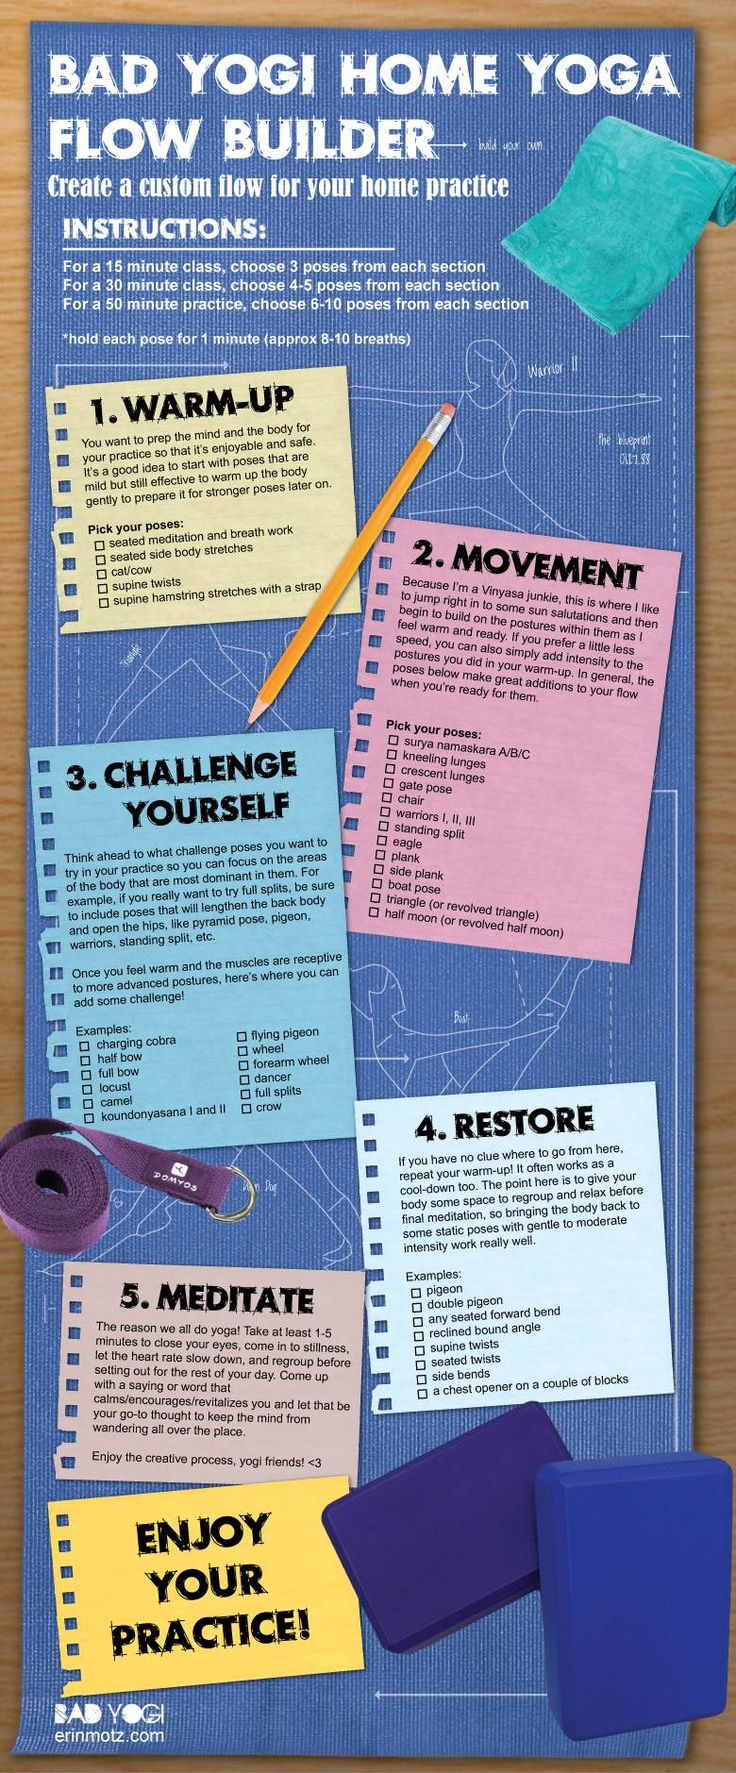 Yoga Flow Builder for your home practice! Created by the original Bad Yogi, Erin Motz.